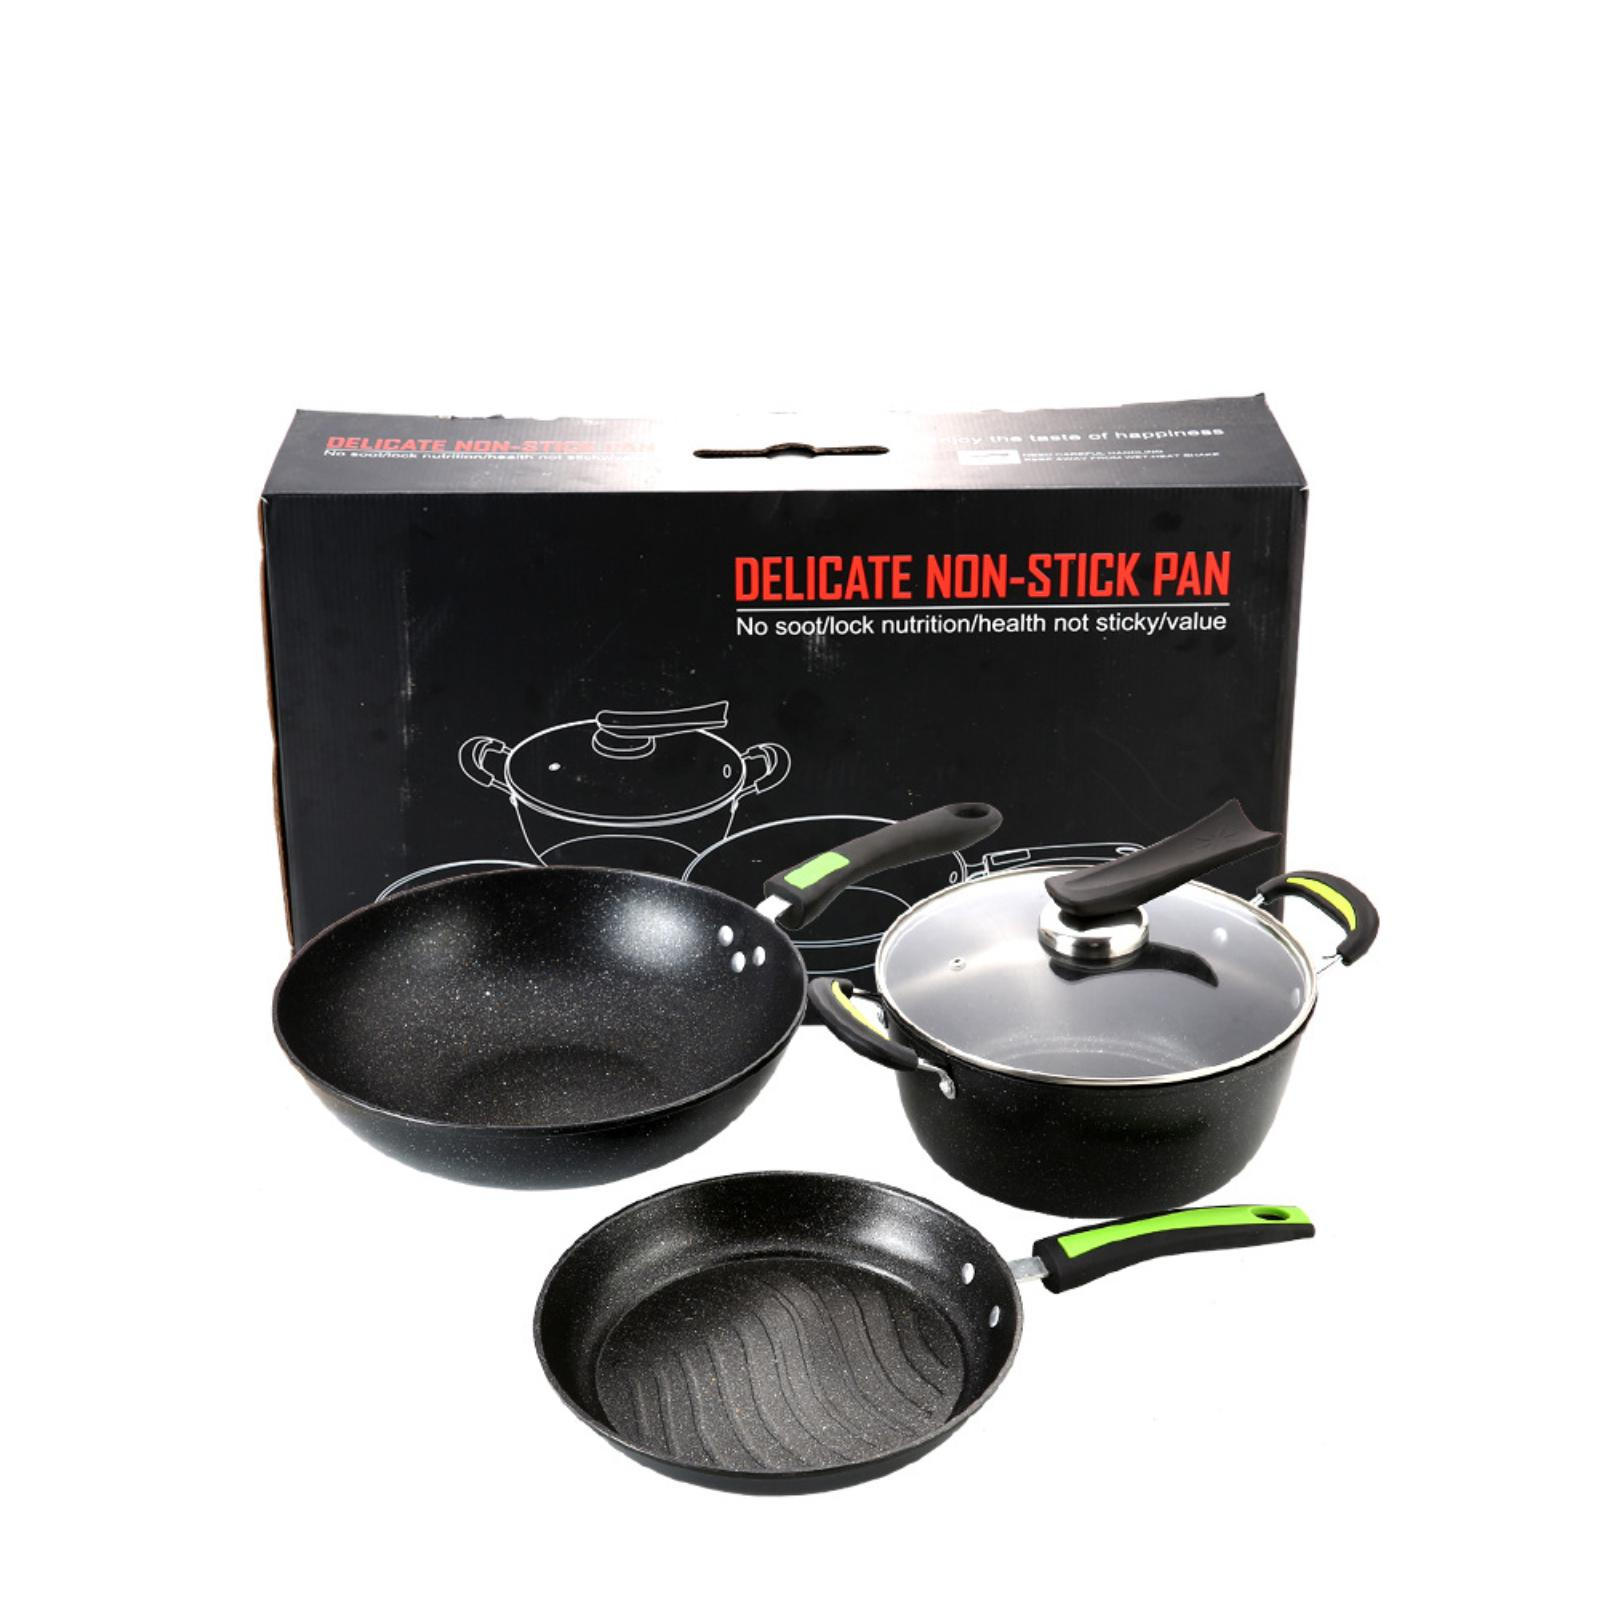 Jiji (granite Nonstick Thermo 3pc Cookware Set) - Kitchen / Pots / Pans / Wok (sg) By Jiji.